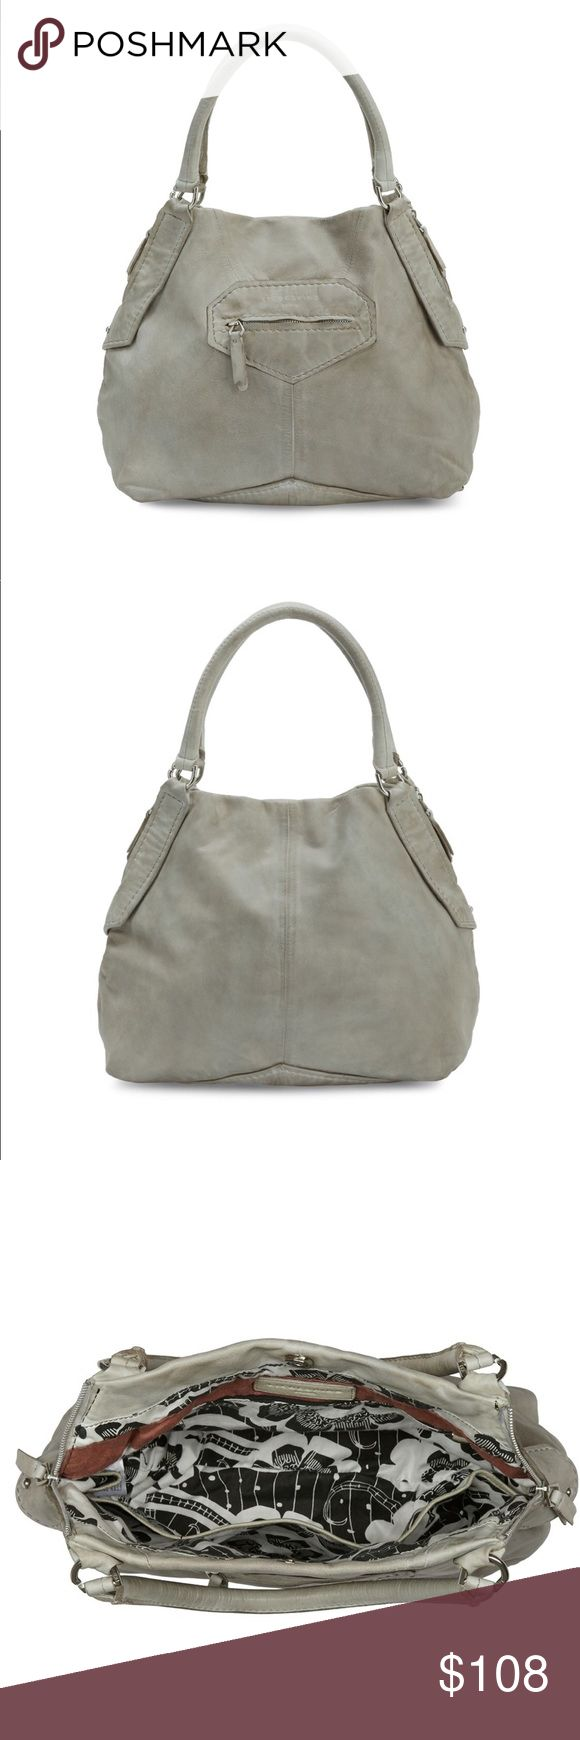 """Liebeskind Berlin Kumba Leather Overnight Hobo MSRP $378 LIEBESKIND Berlin Kumba Leather Overnight Hobo Bag. - Approx. H X W X D (In): 13.2 X 15.2 X 9.6; 8"""" handle drop, 14"""" strap drop  - Distressed, natural grain leather - Detachable shoulder strap - Dual top handles - Top zip closure - Grey Leather - Silver toned hardware - One outside zip compartment  - Printed fabric lining - One zip wall pocket - 3 slip pocket - Spacious compartment  **NEW EITH DEFECTS**. Minor exterior scuff/dirt marks…"""